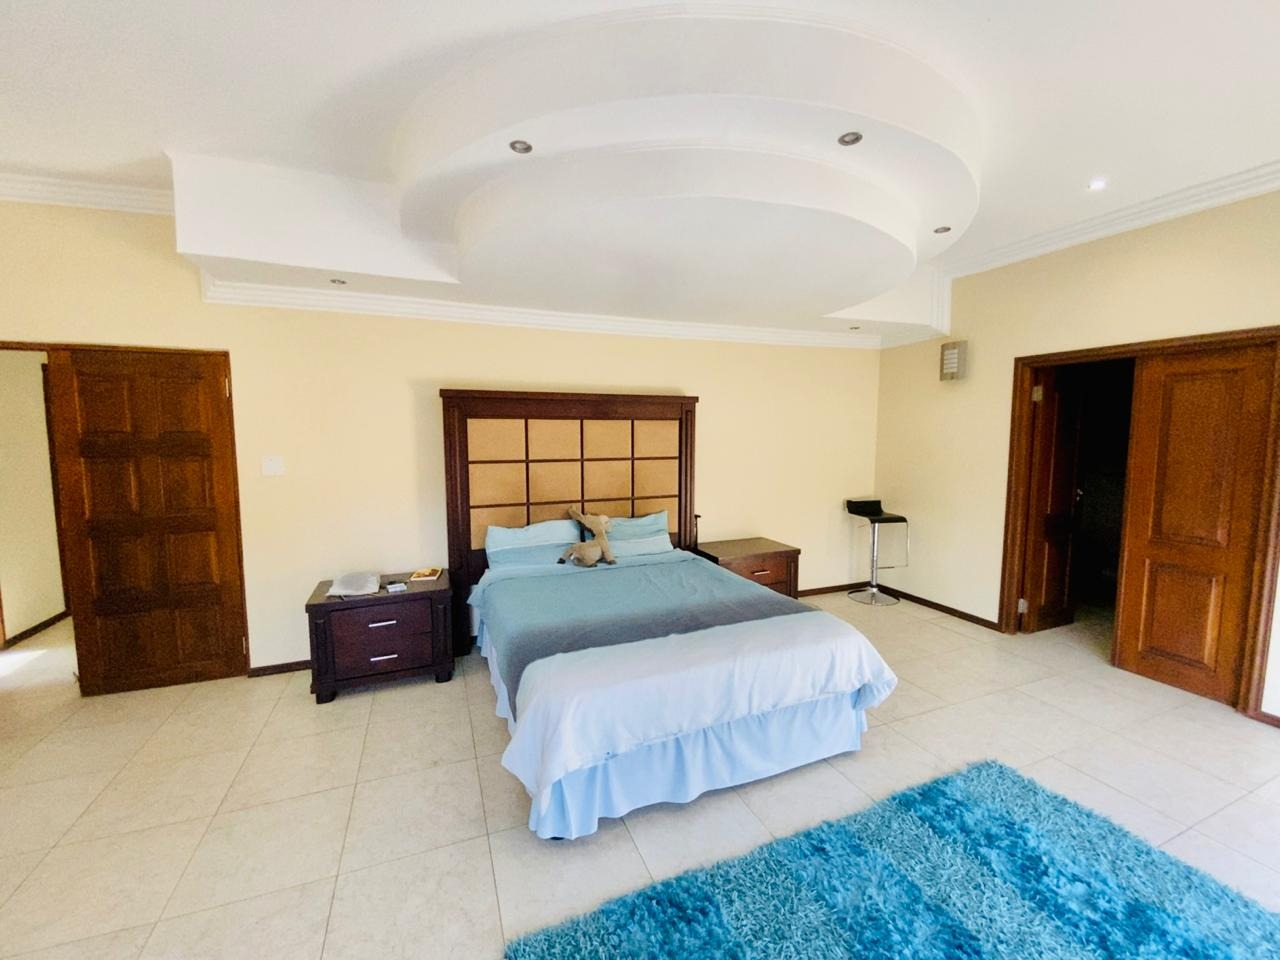 7 Bedroom House For Sale in Blue Hills